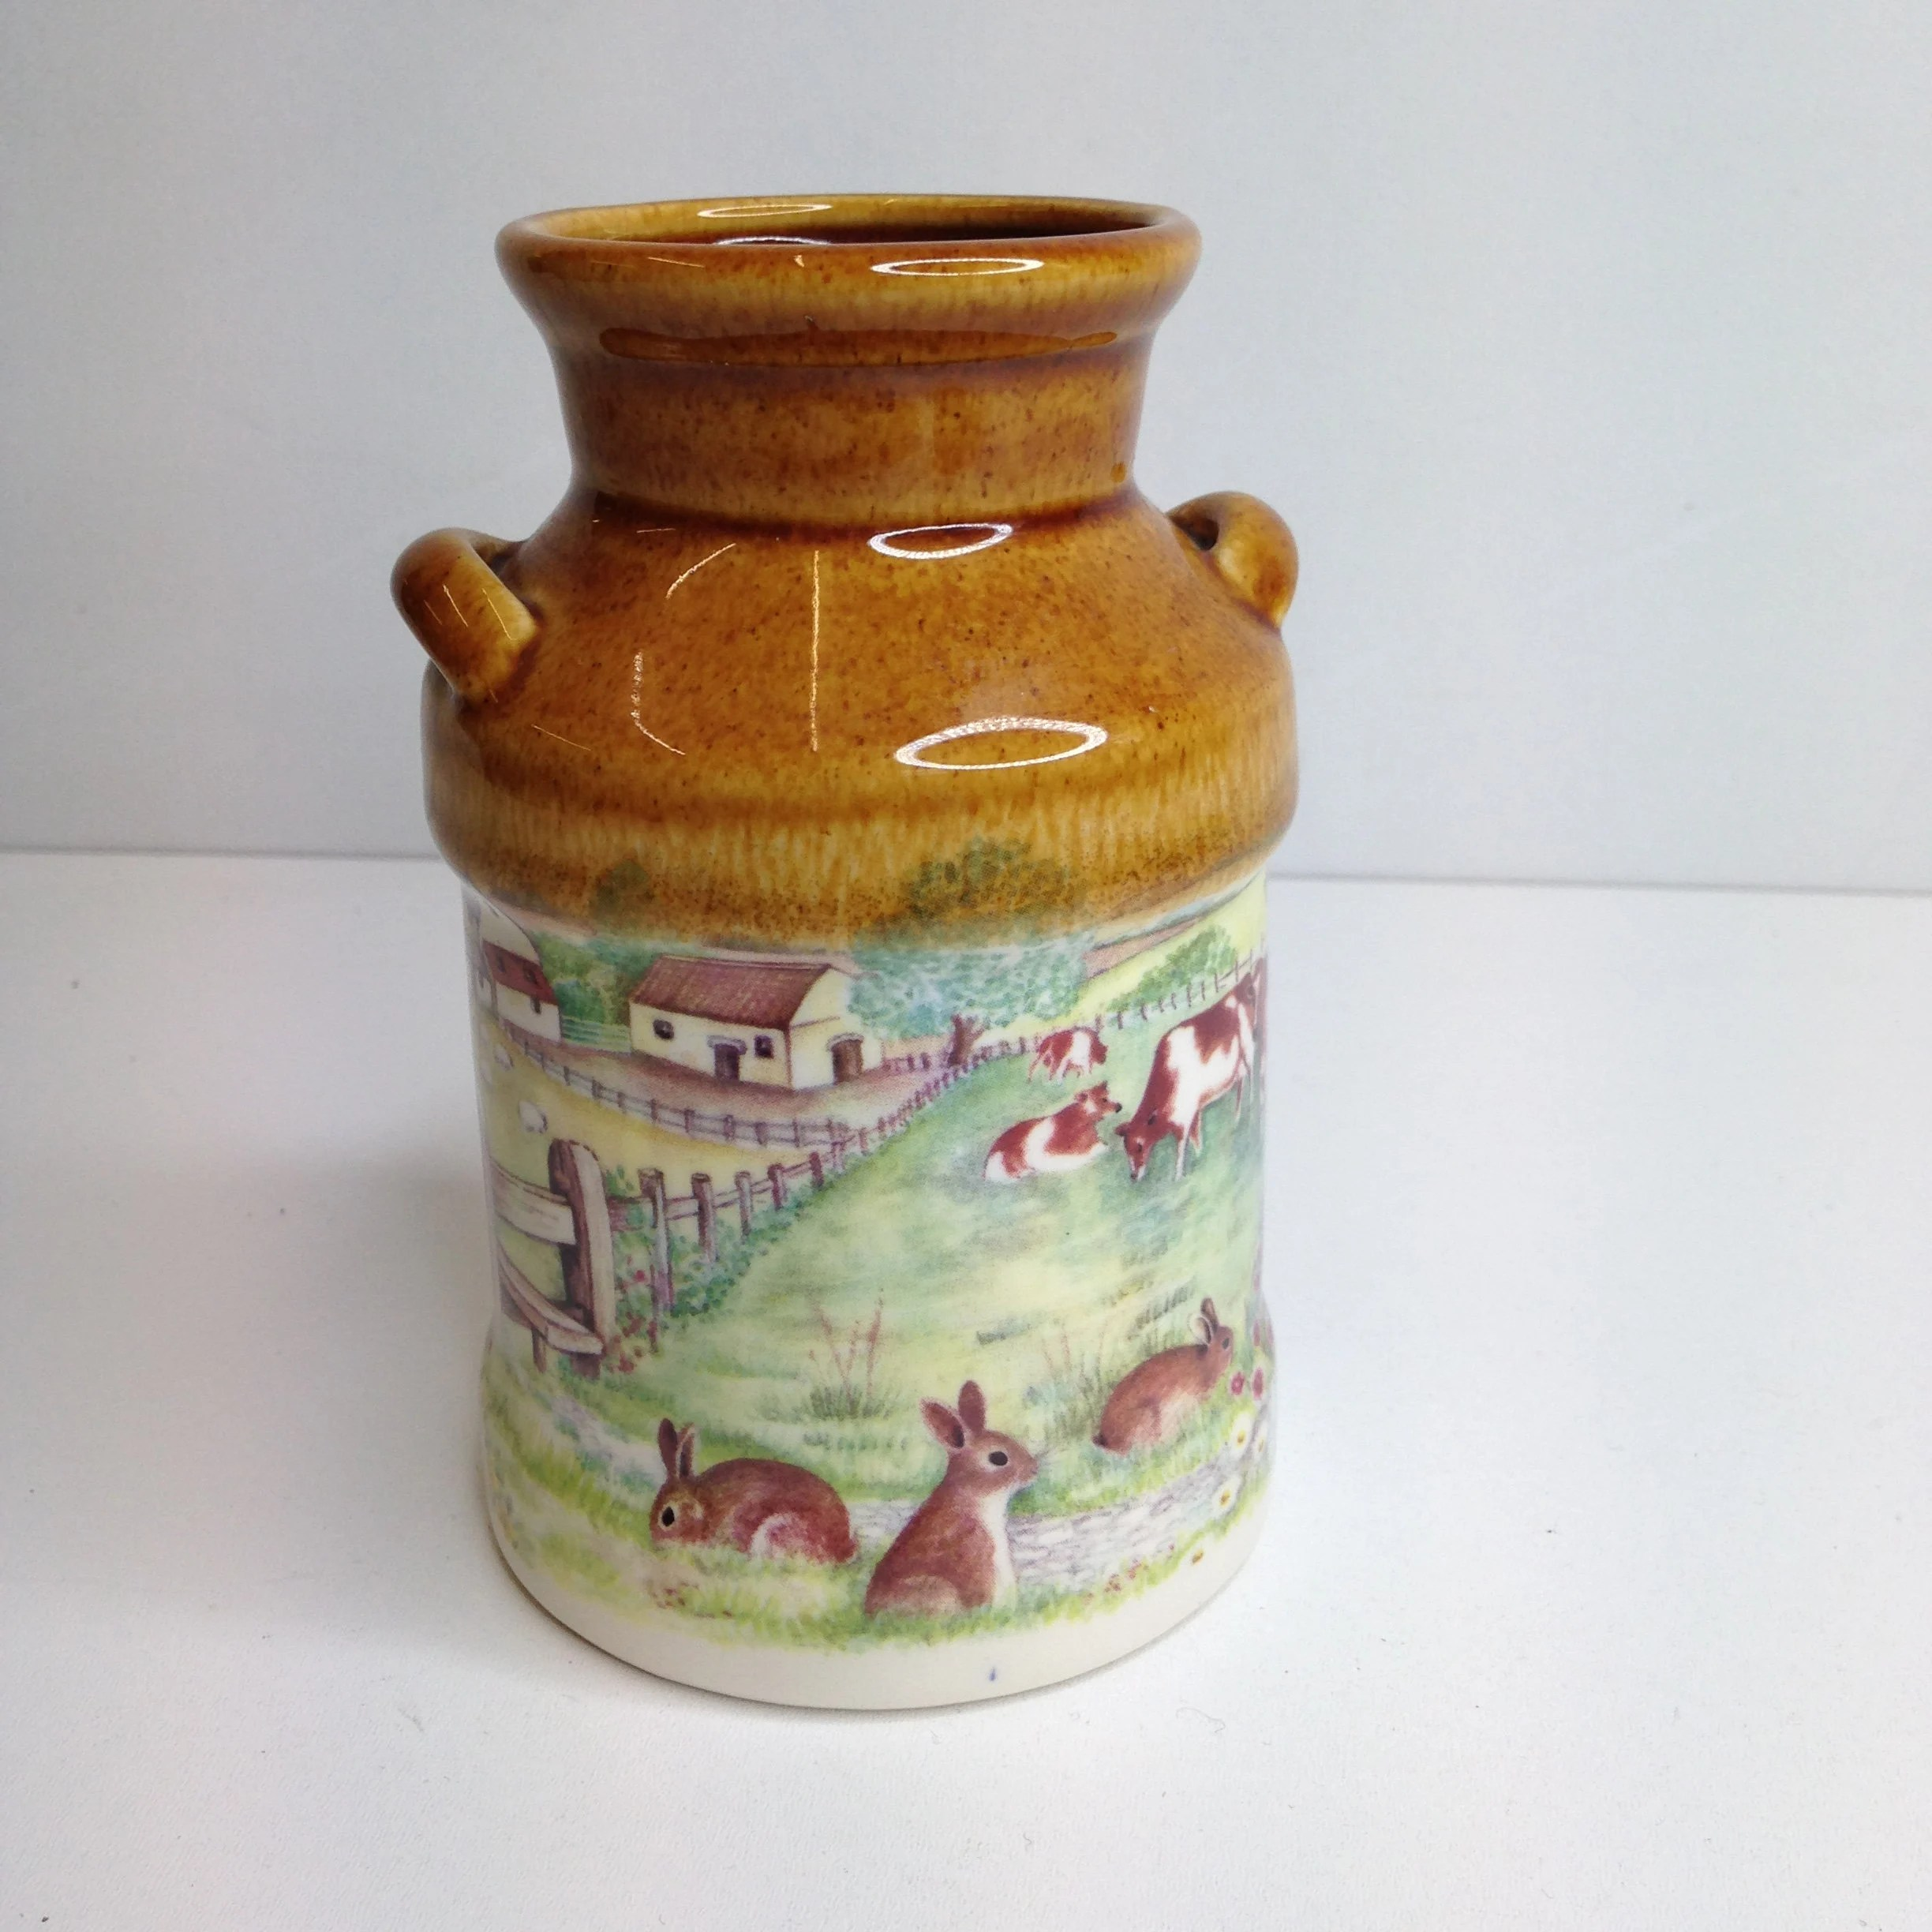 Decorative Milk Urn Vintage Pressingoll Pottery Decorative Milk Urn Utensil Holder With Farm Scene Cows Rabbits Overall Good Condition